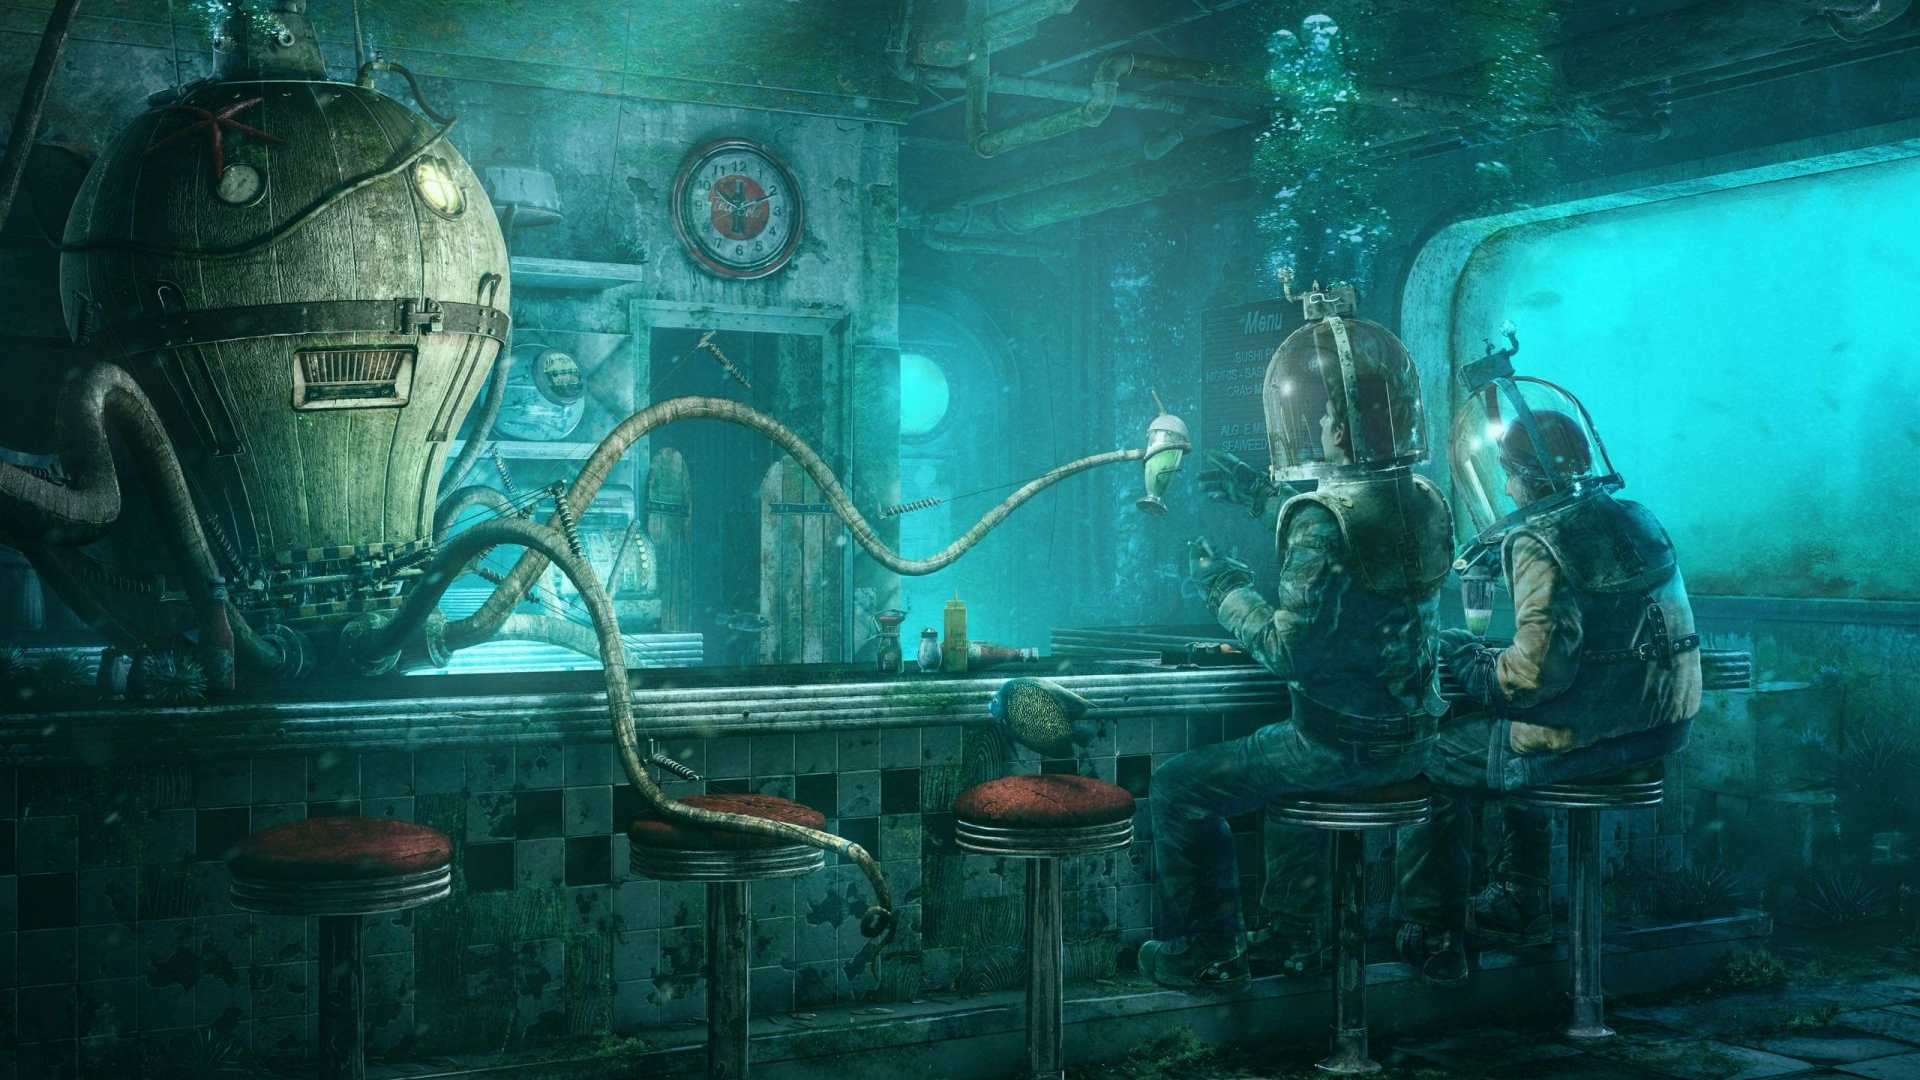 Deep Sea Diner Hd обои фон 1920x1080 Id177816